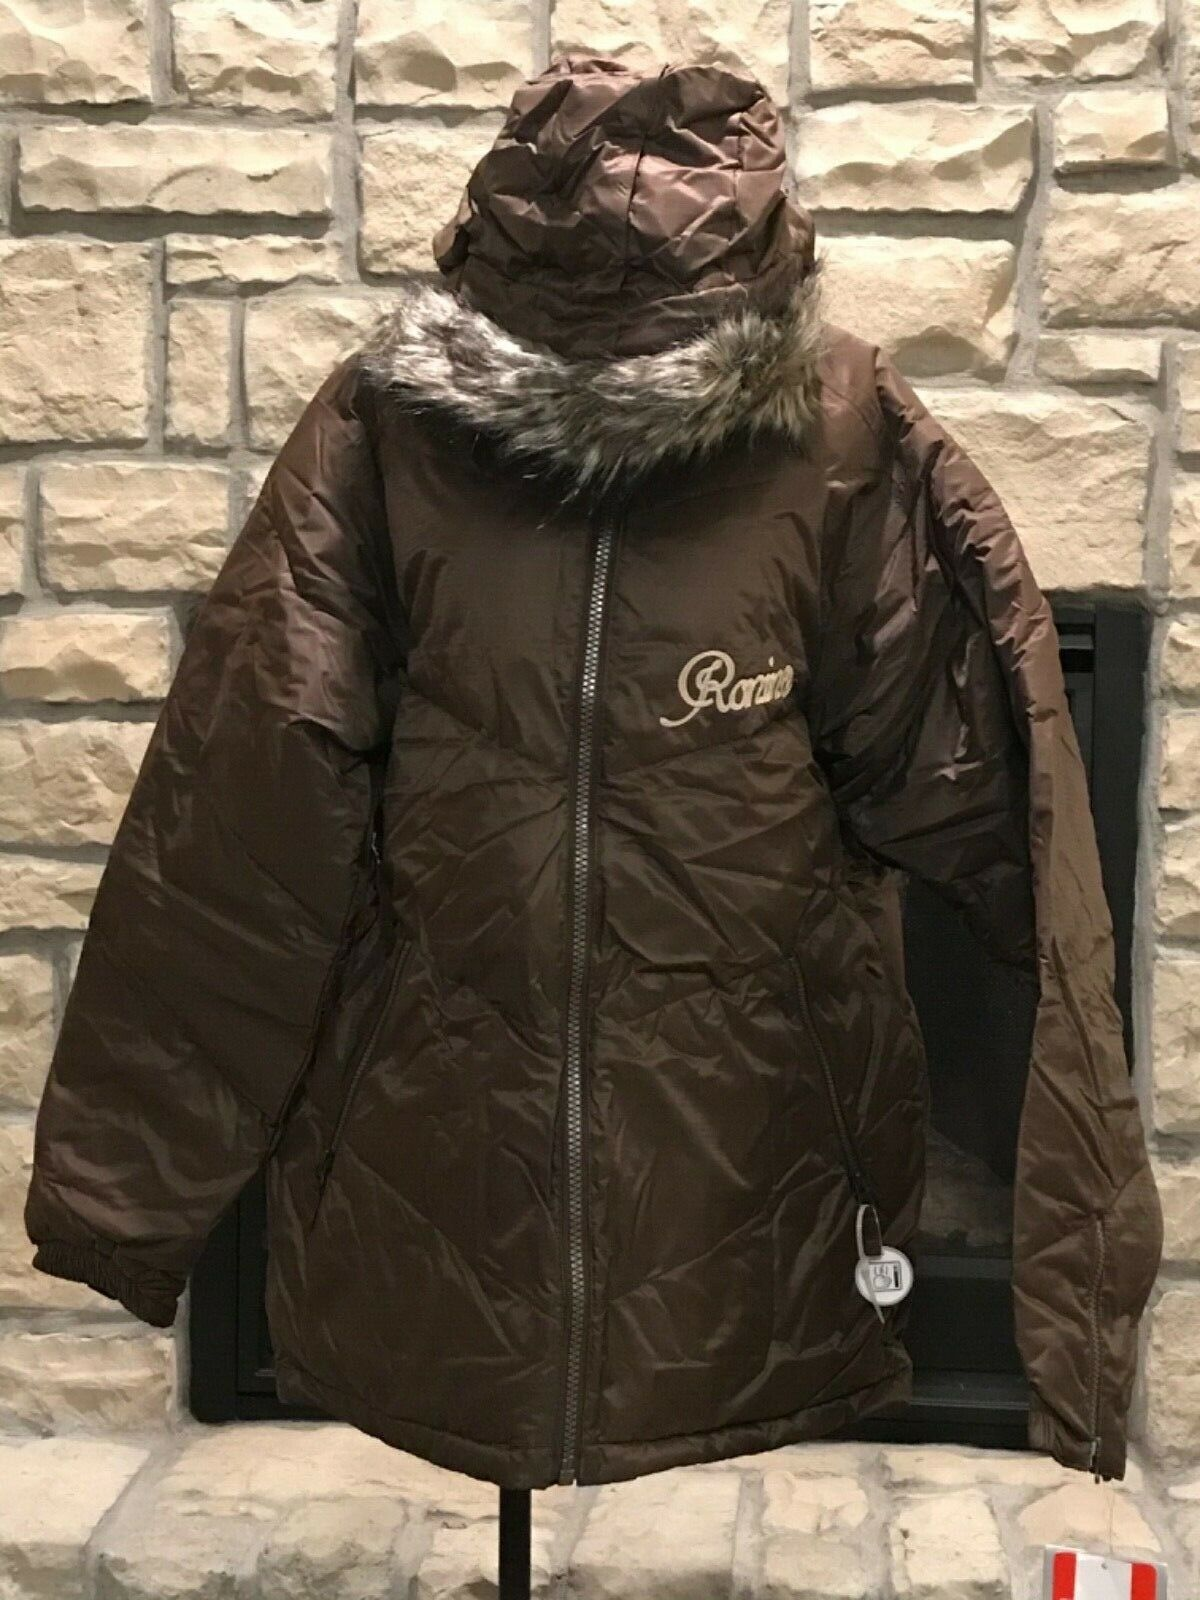 NEW Größe SMALL BURTON RONIN braun SNOWBOARD SKI JACKET WINTER COAT orig.  299.95